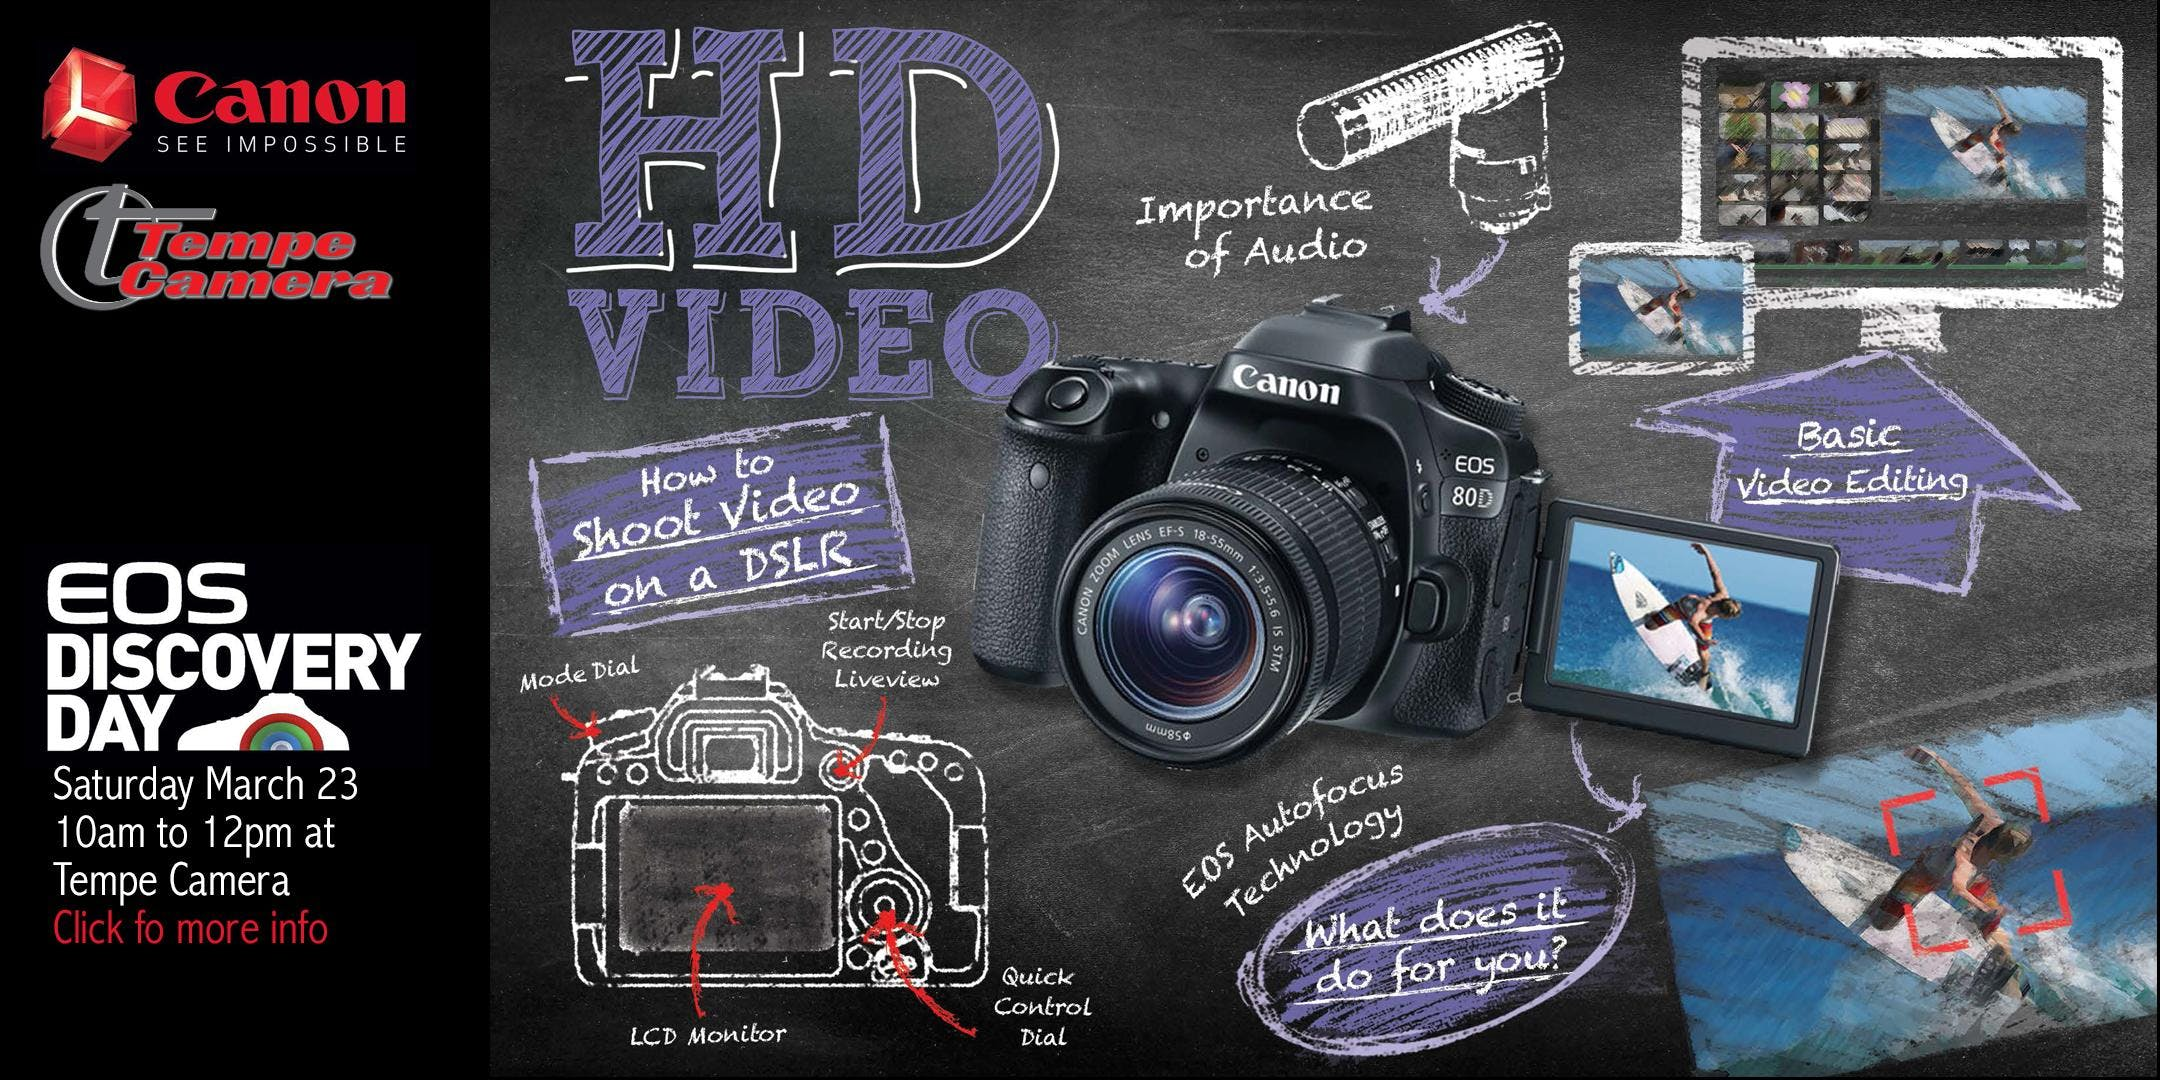 EOS Discovery Day - HD Video: The Essentials of Shooting Video with a DSLR